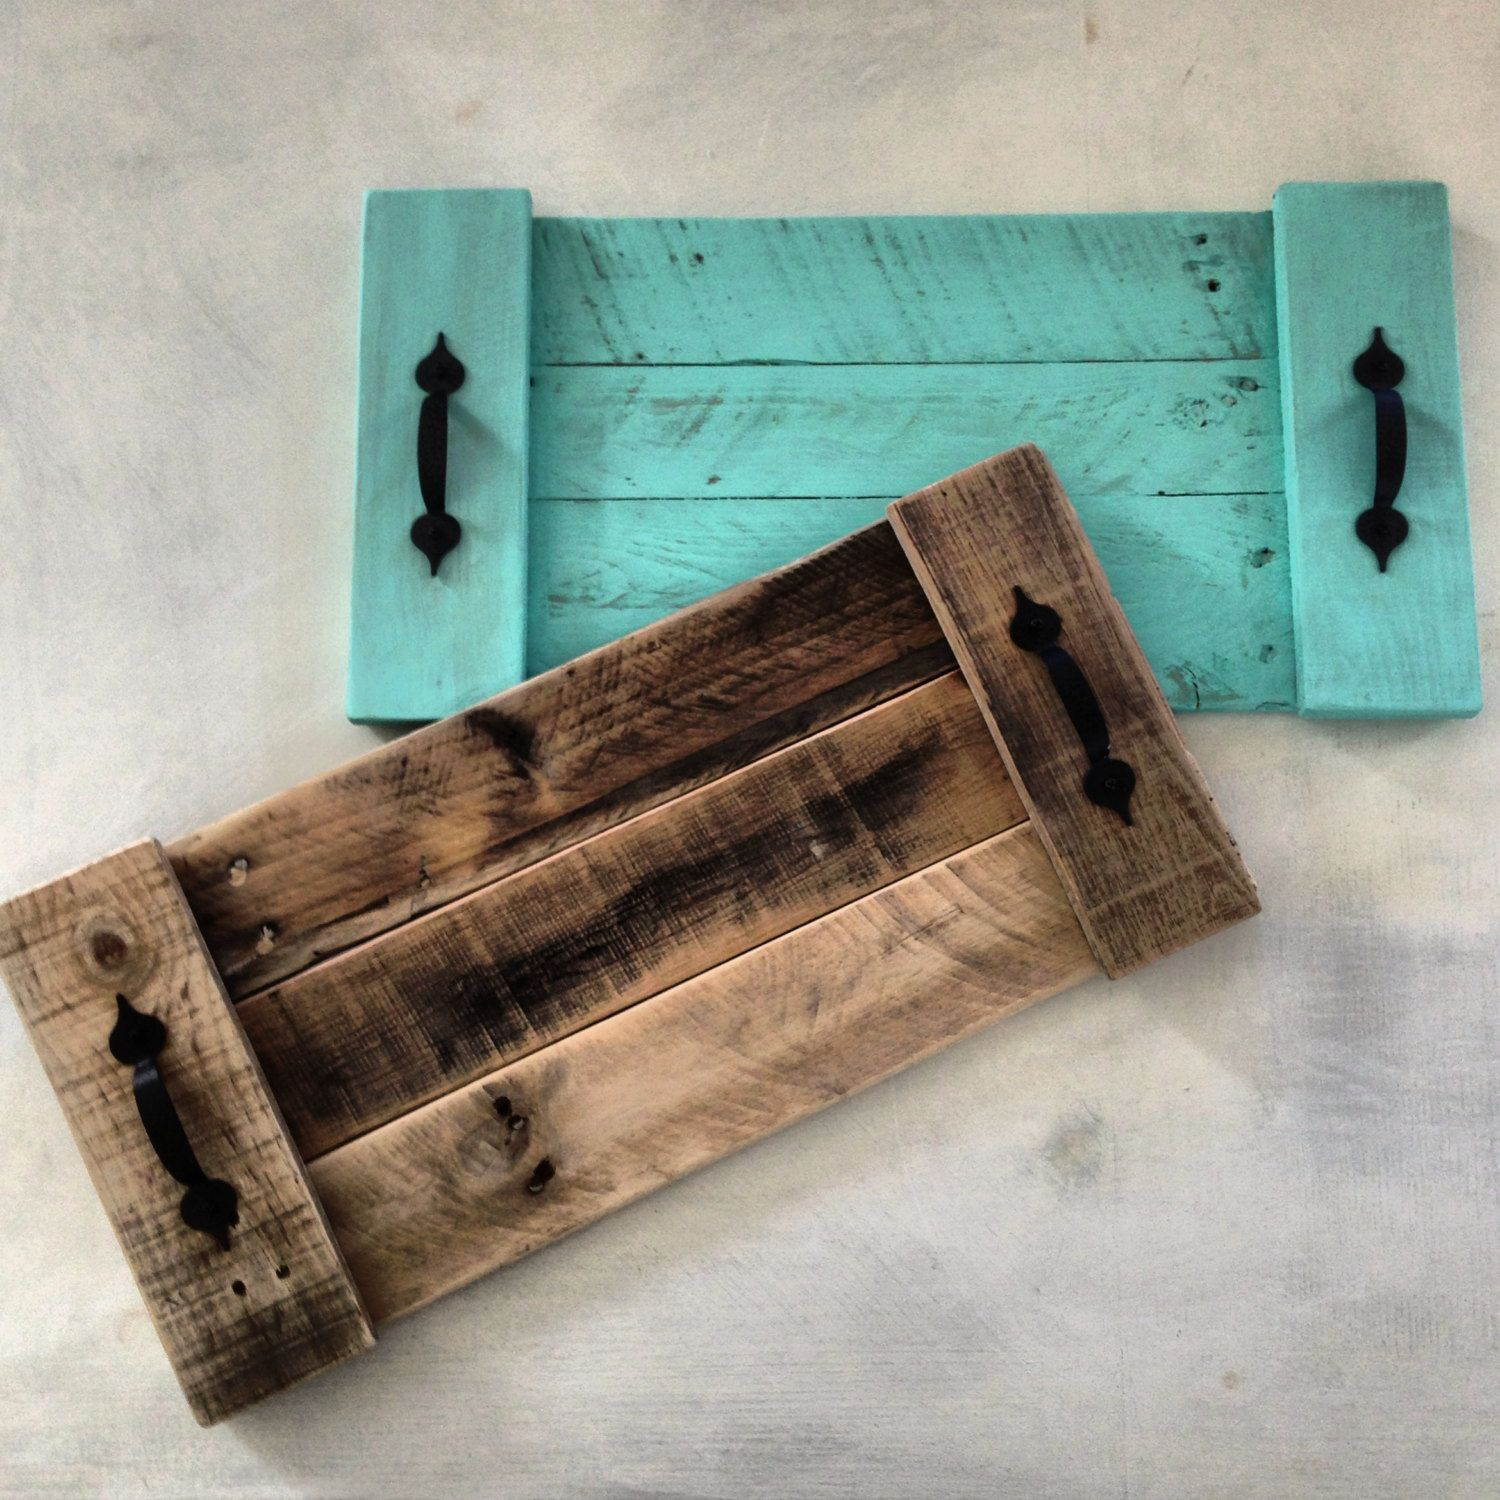 Wood Pallet Tray Fantastic Home Decor Catalogs Pallet Tray Pallet Crafts